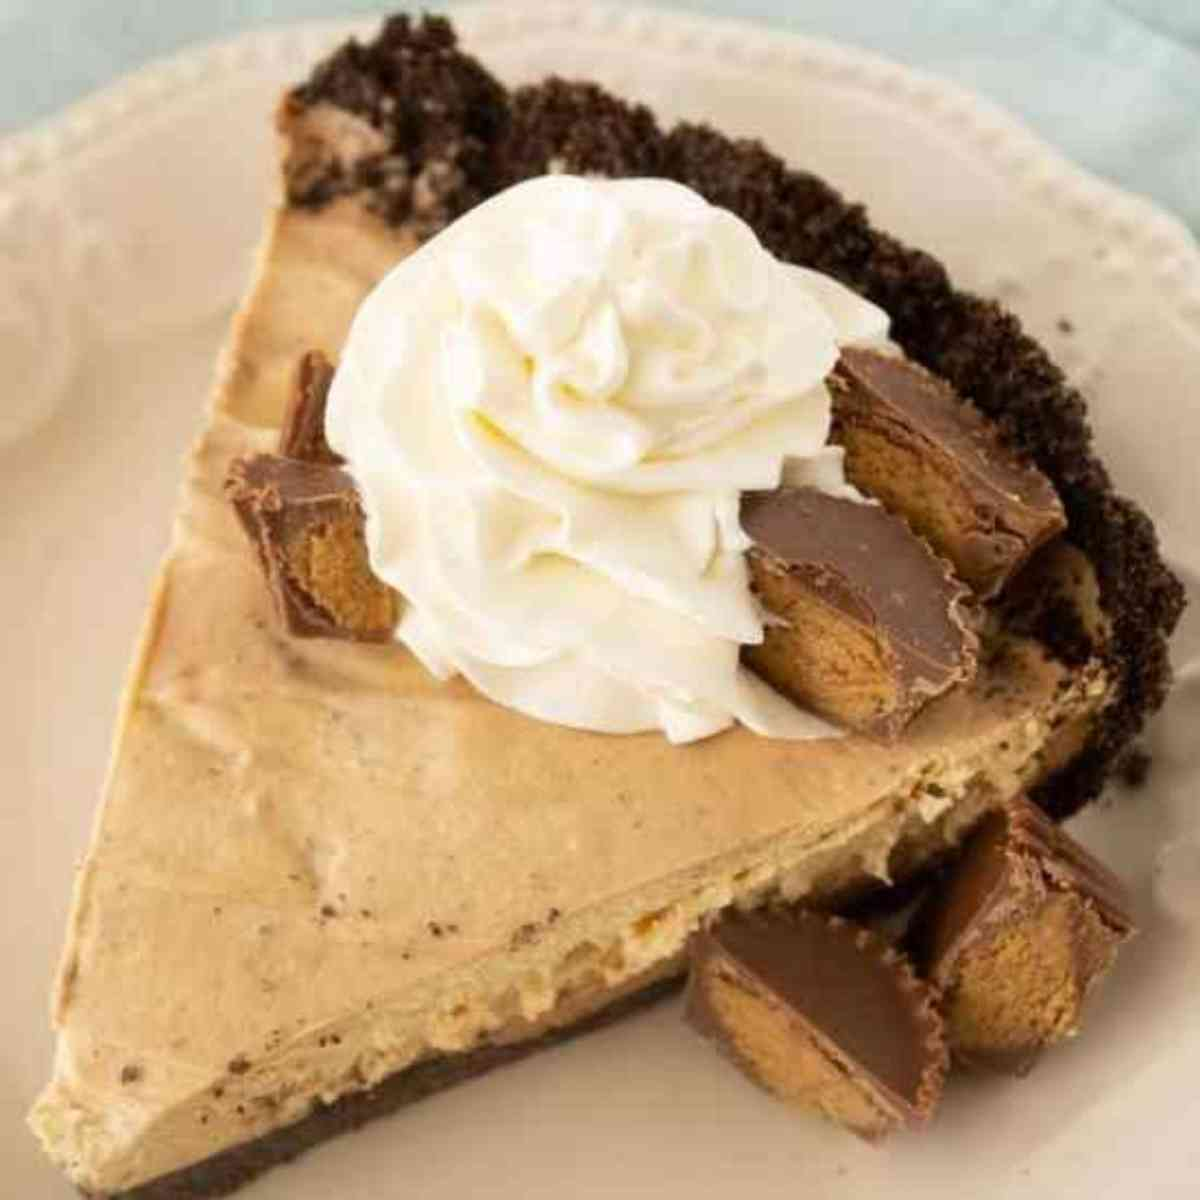 Slice of chocolate peanut butter mousse pie garnished with whipped cream.